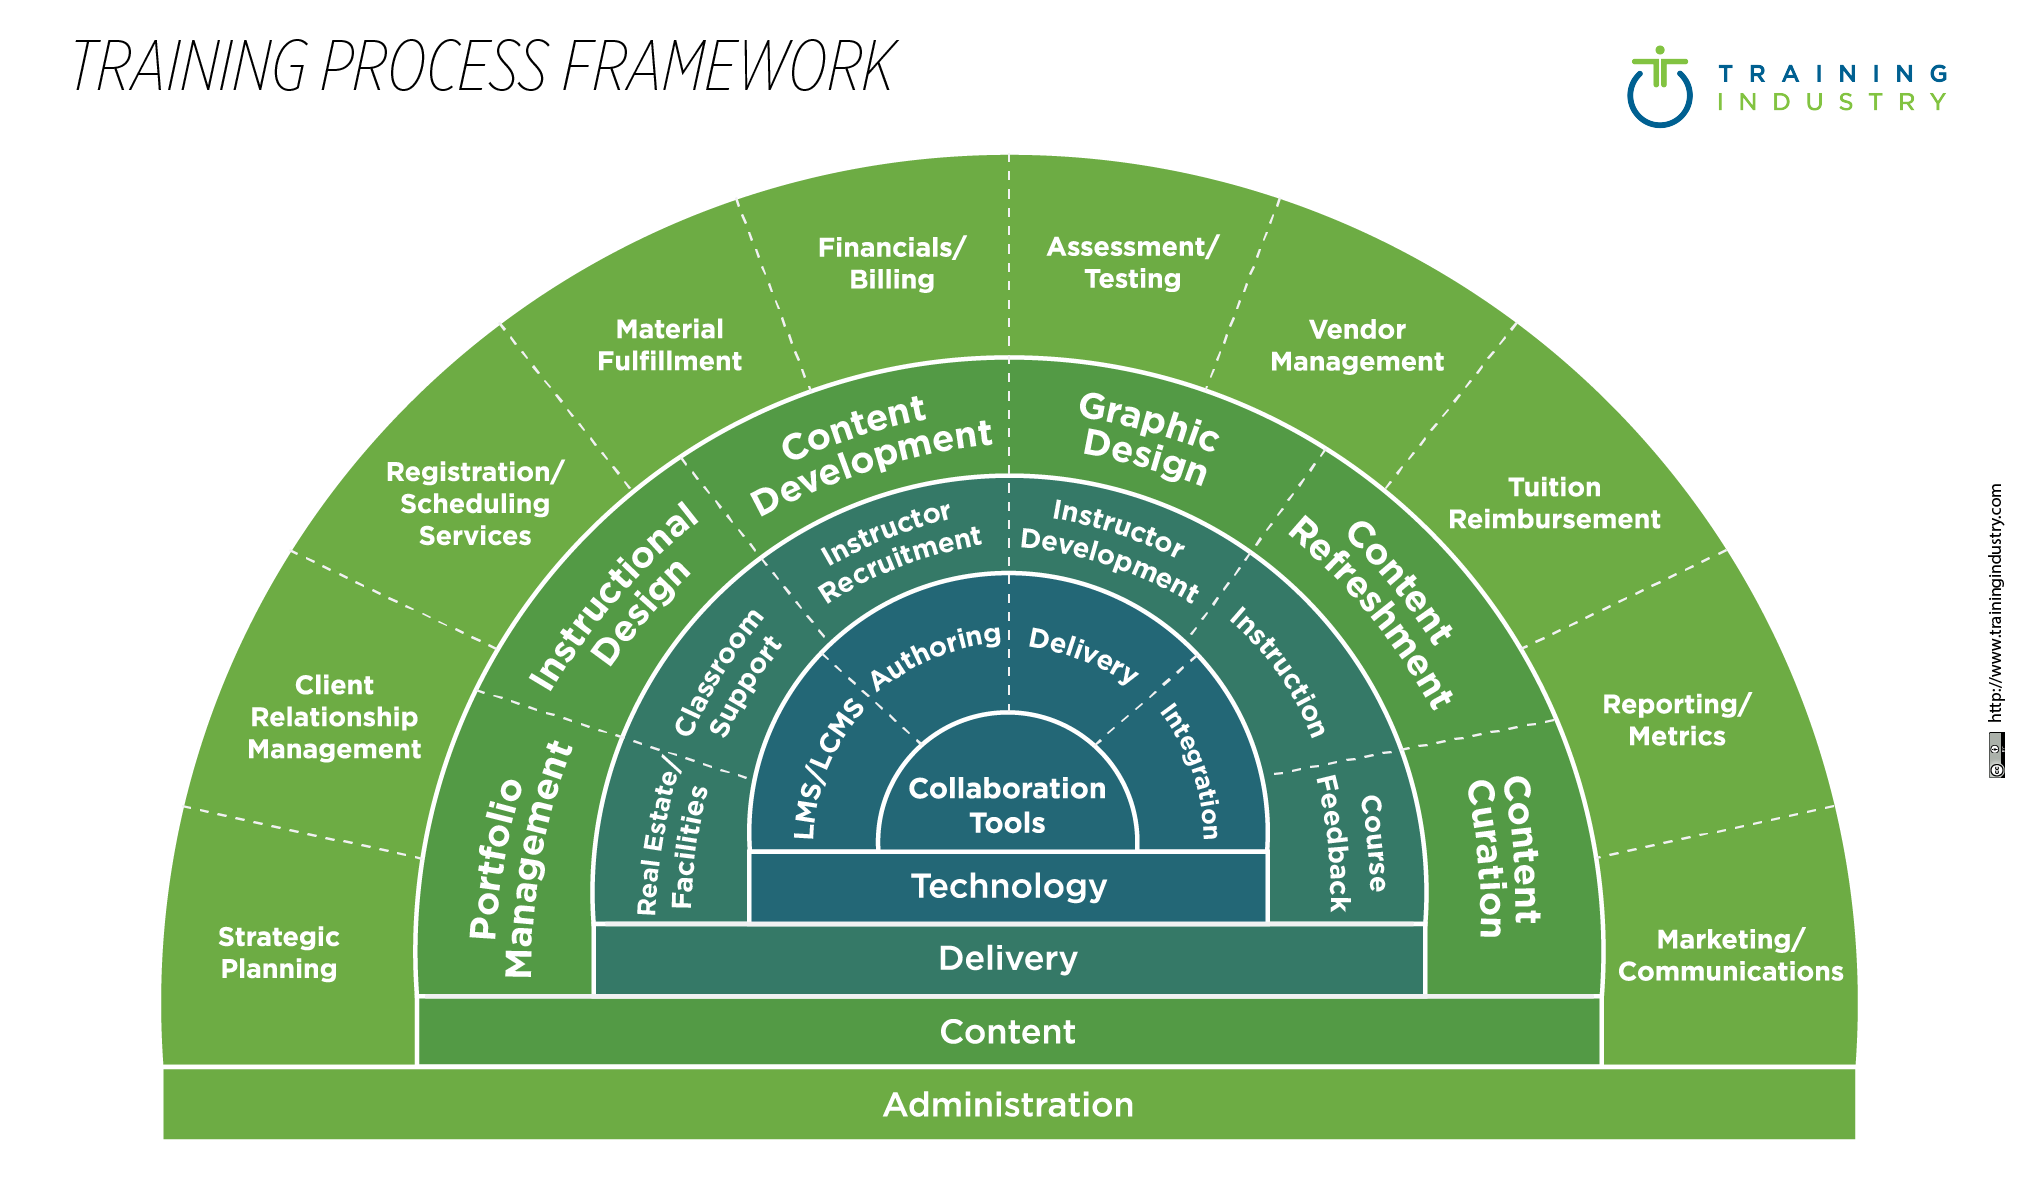 Training Process Framework _485x 284